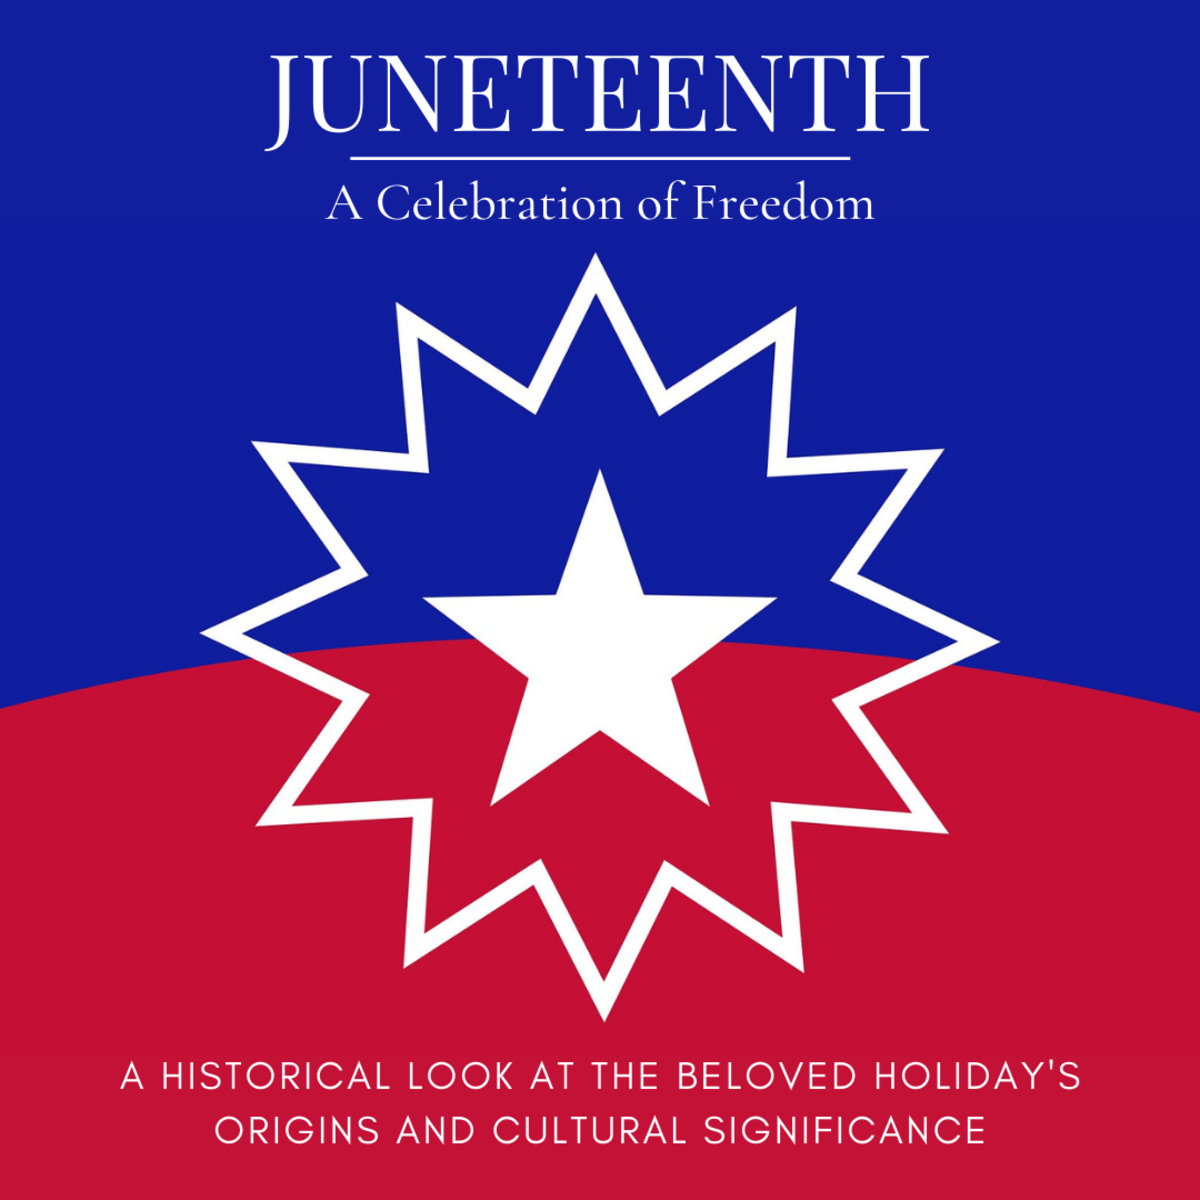 From the Civil War and the Emancipation Proclamation to Juneteenth